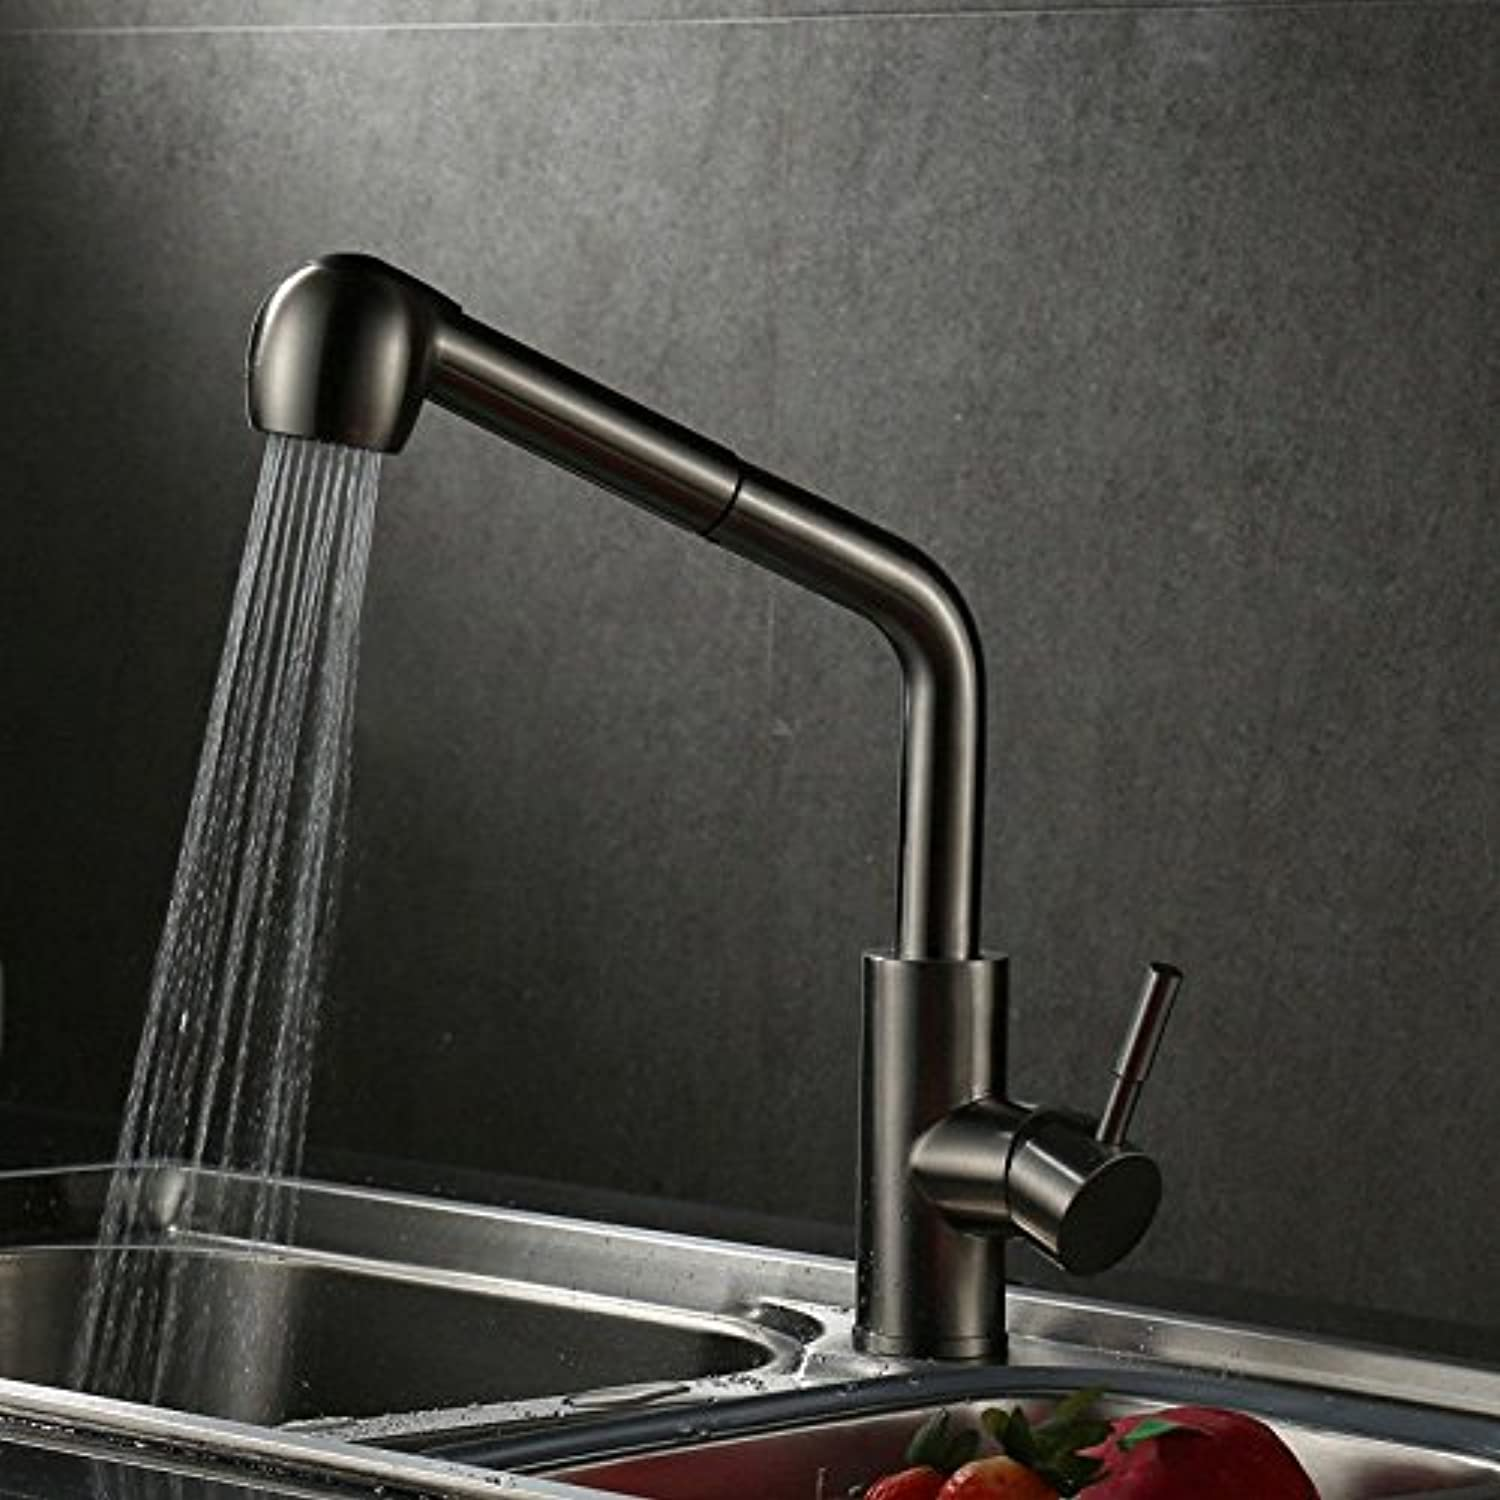 Janitorial & Sanitation Supplies Restroom Fixtures SADASD Modern Bathroom Basin Faucet Copper White Basin Mixer Tap Ceramic Valve Single Hole Single Handle Hot and Cold Mixer Tap With G1/2 Hose